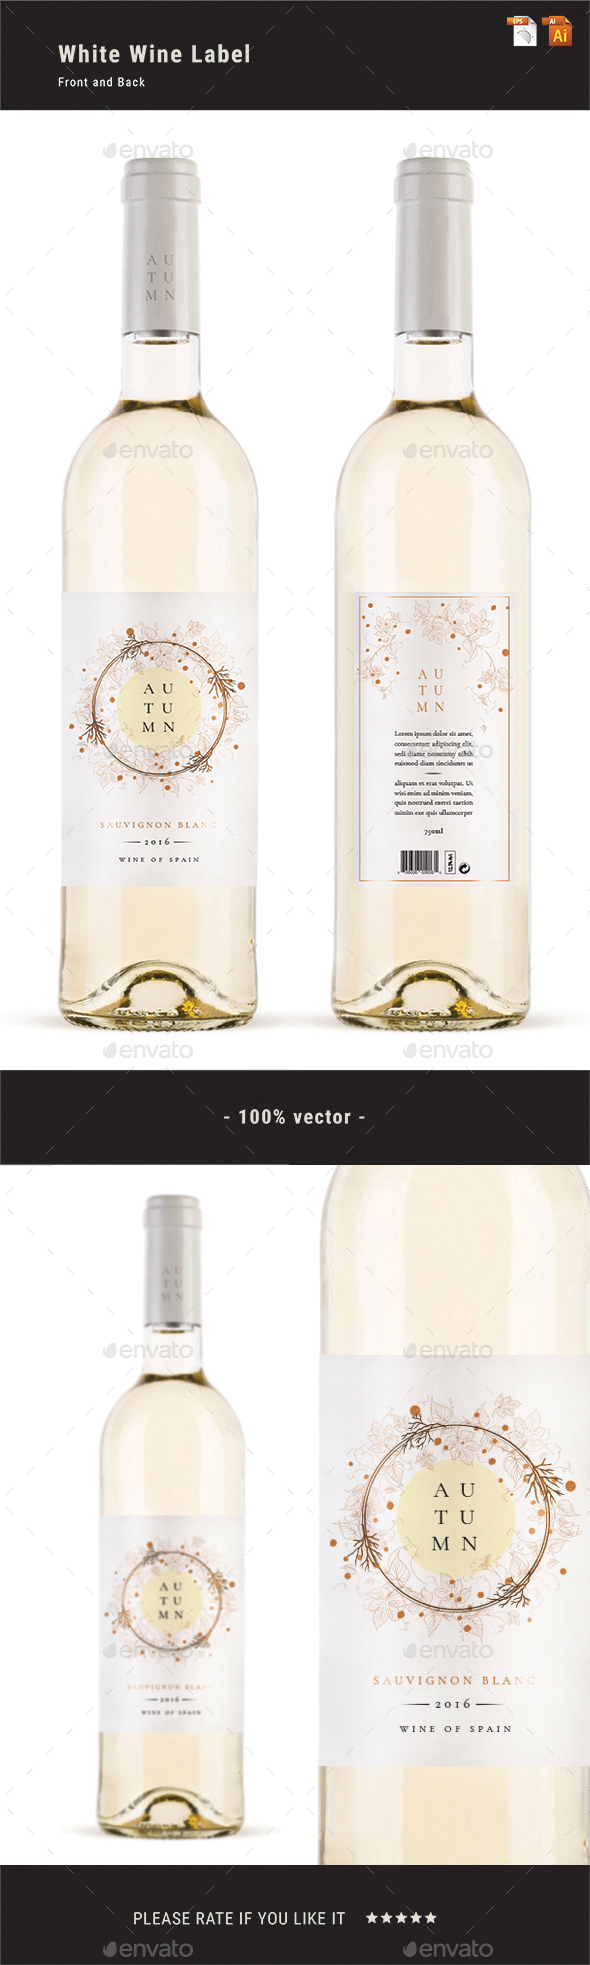 White Wine Label - Packaging Print Templates